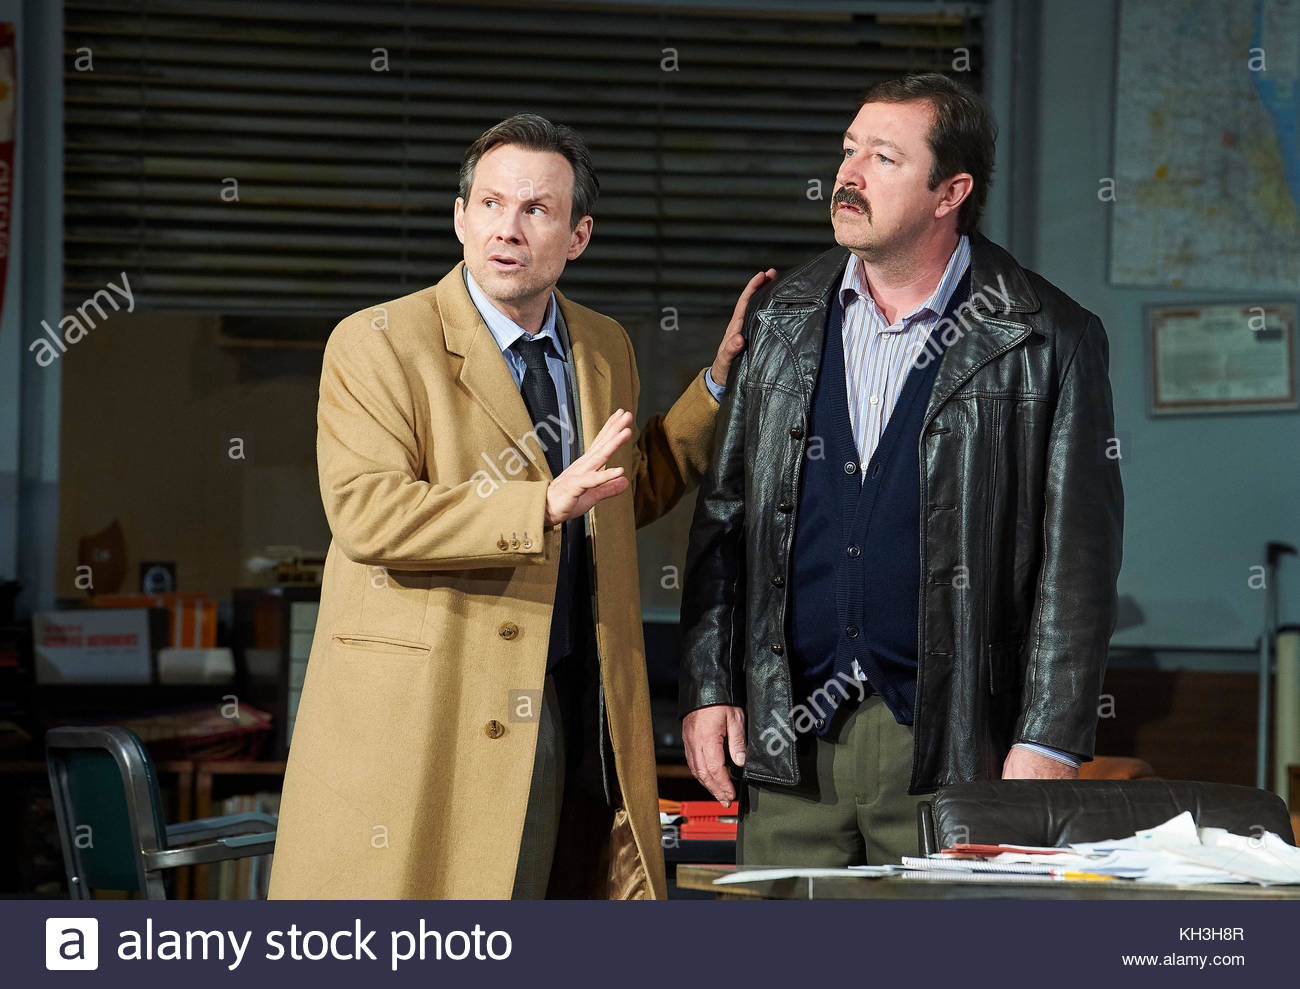 Glengarry Glen Ross by David Mamet, directed by Sam Yates. With Christian Slater as Ricky Roma, Oliver Ryan as Baylen - Stock Image